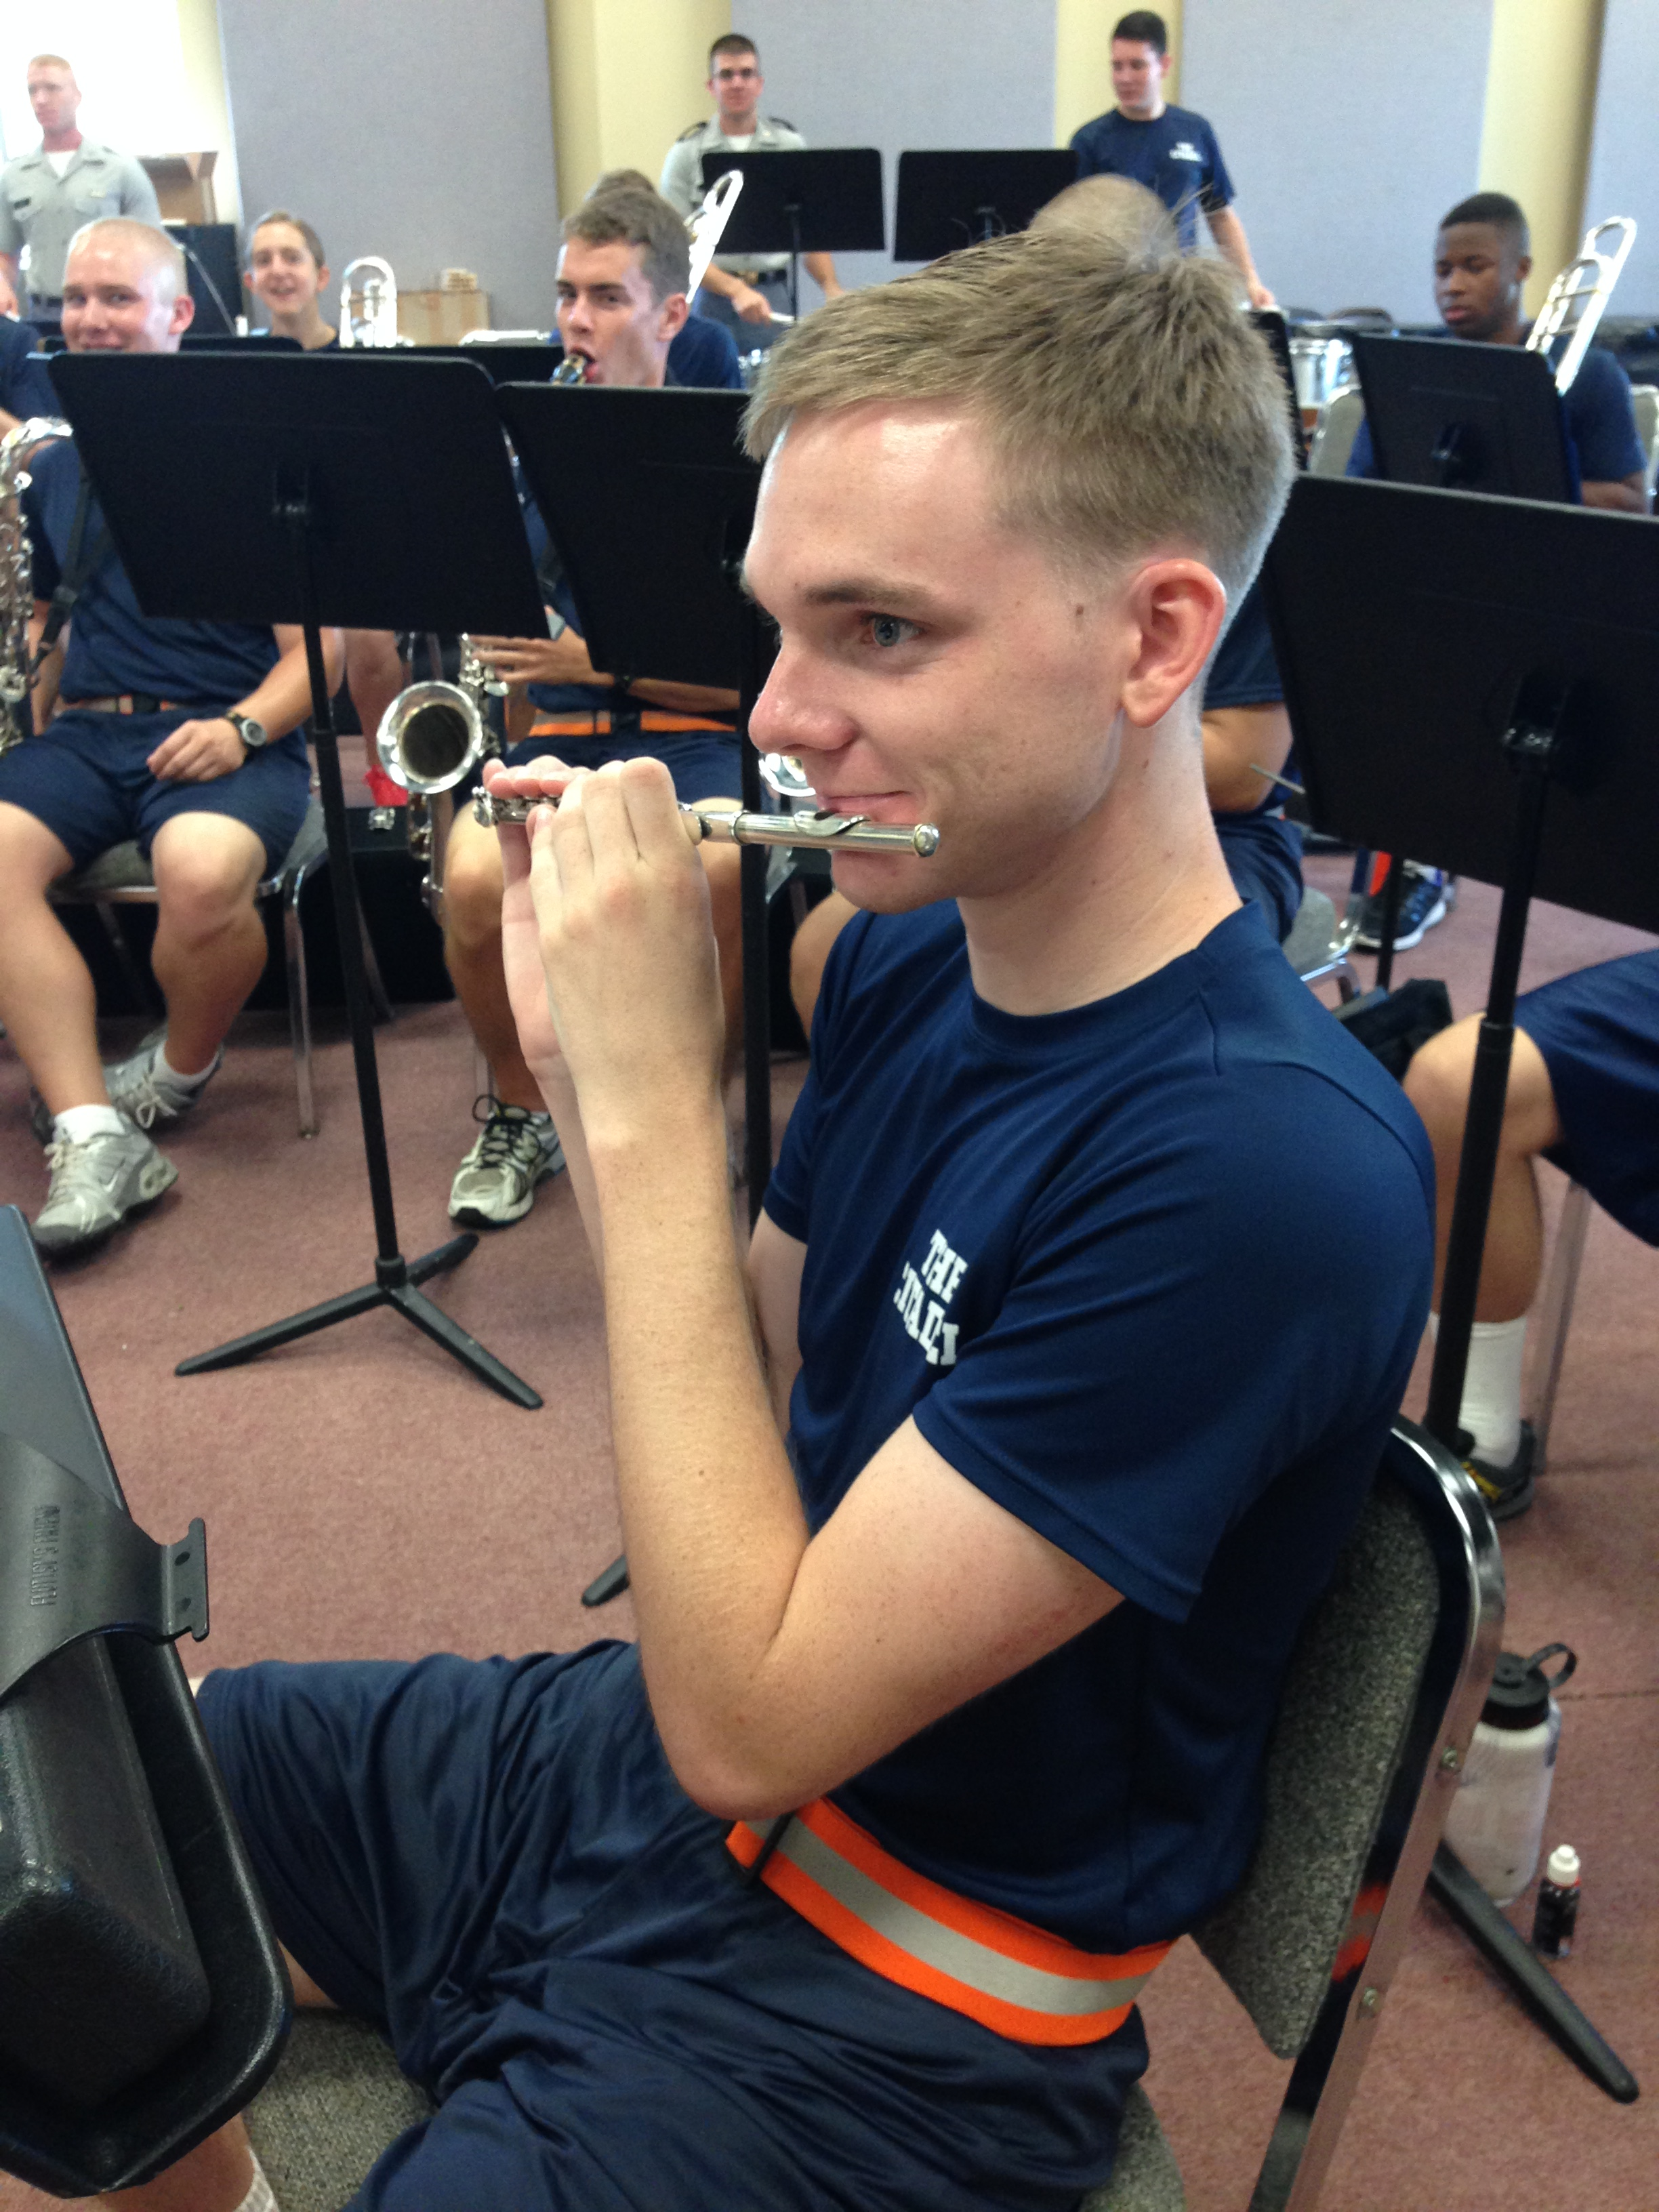 2015-Citadel-Regimental-Band-and-Pipes-member